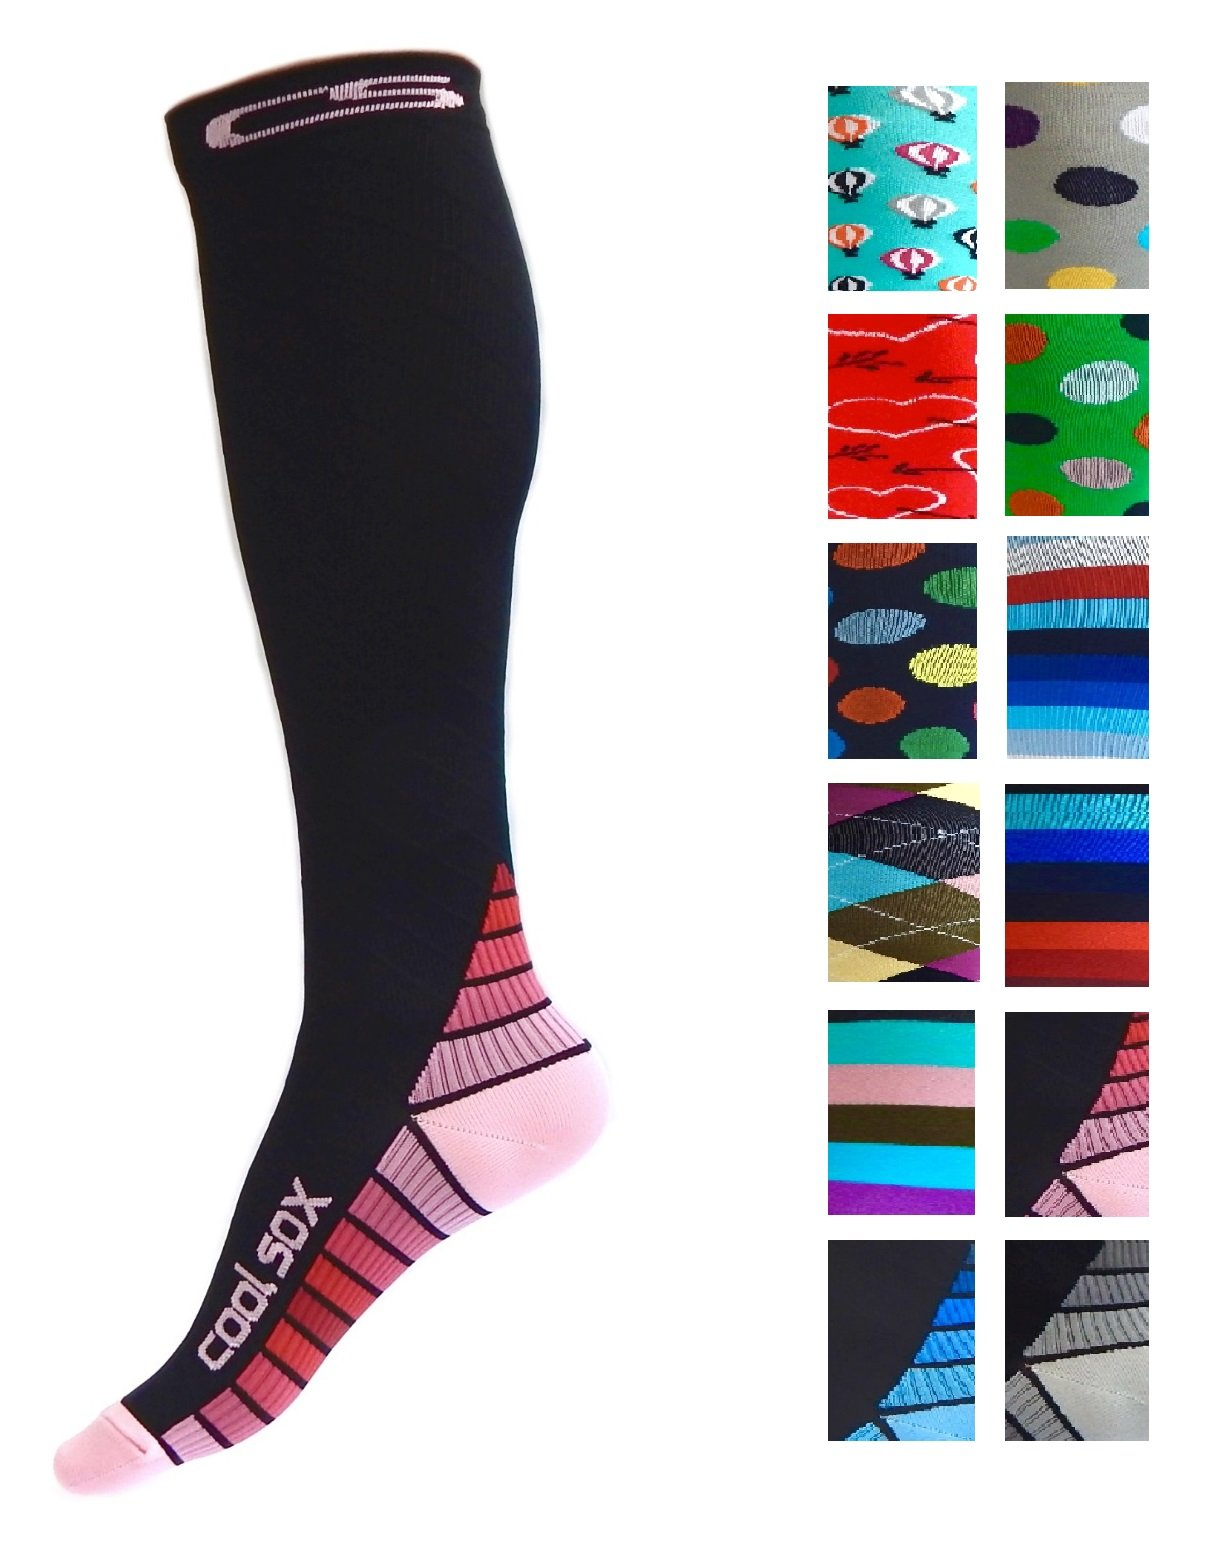 Compression Socks for Men & Women - BEST Graduated Athletic Fit for Running, Nurses, Shin Splints, Flight Travel, & Maternity Pregnancy - Boost Stamina, Circulation & Recovery (Black & Pink, S/M)